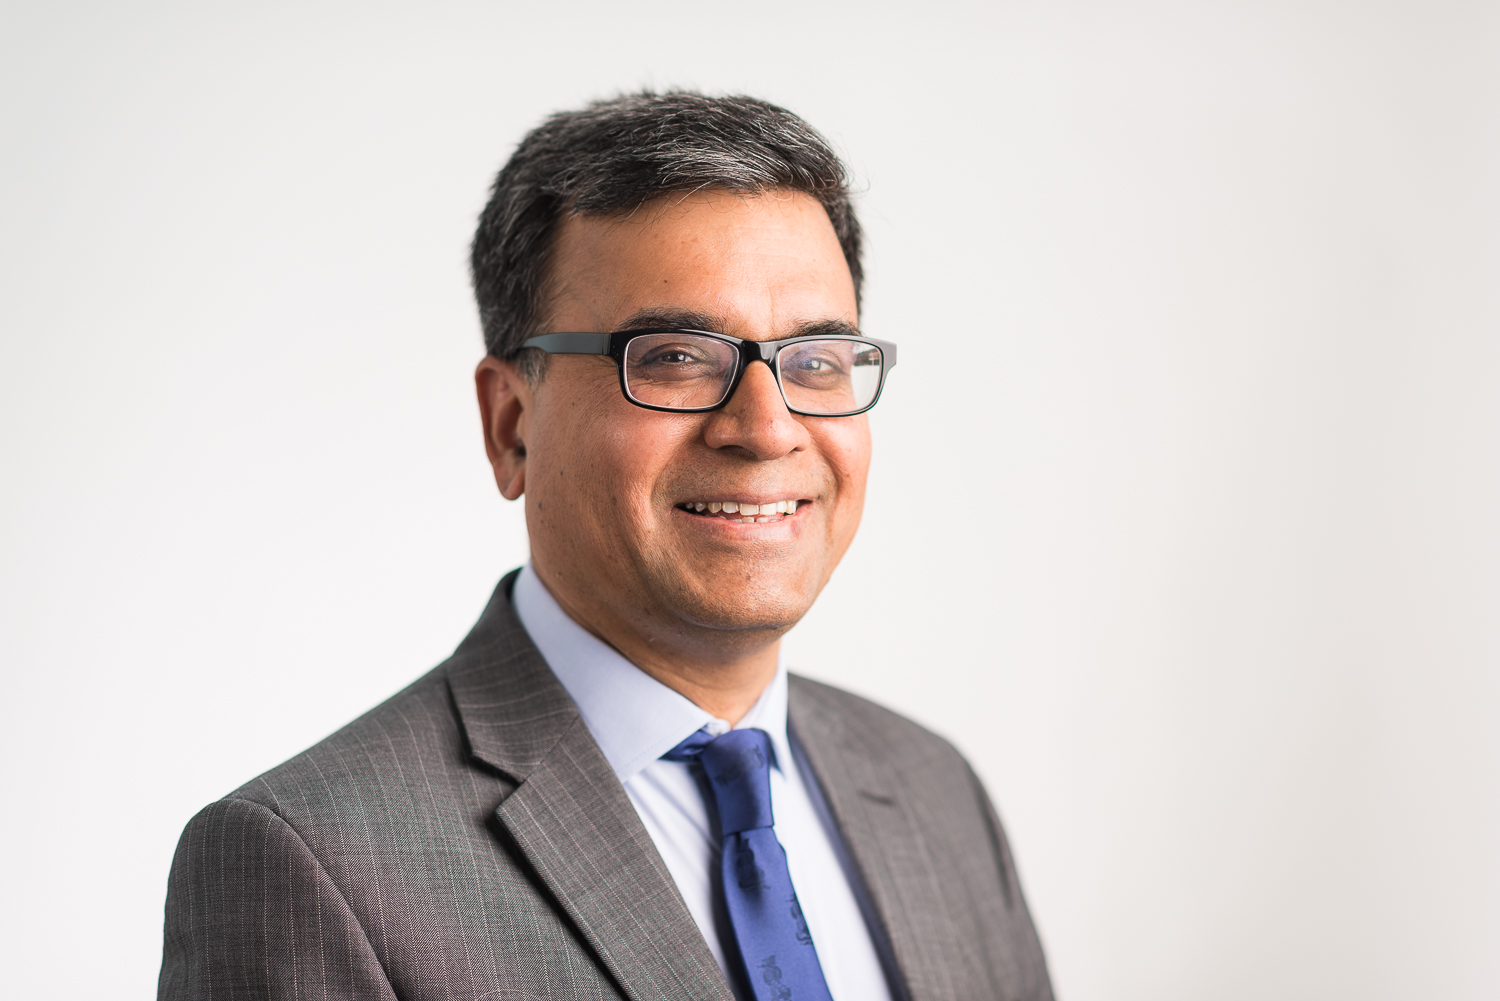 Paresh Kothari is a 